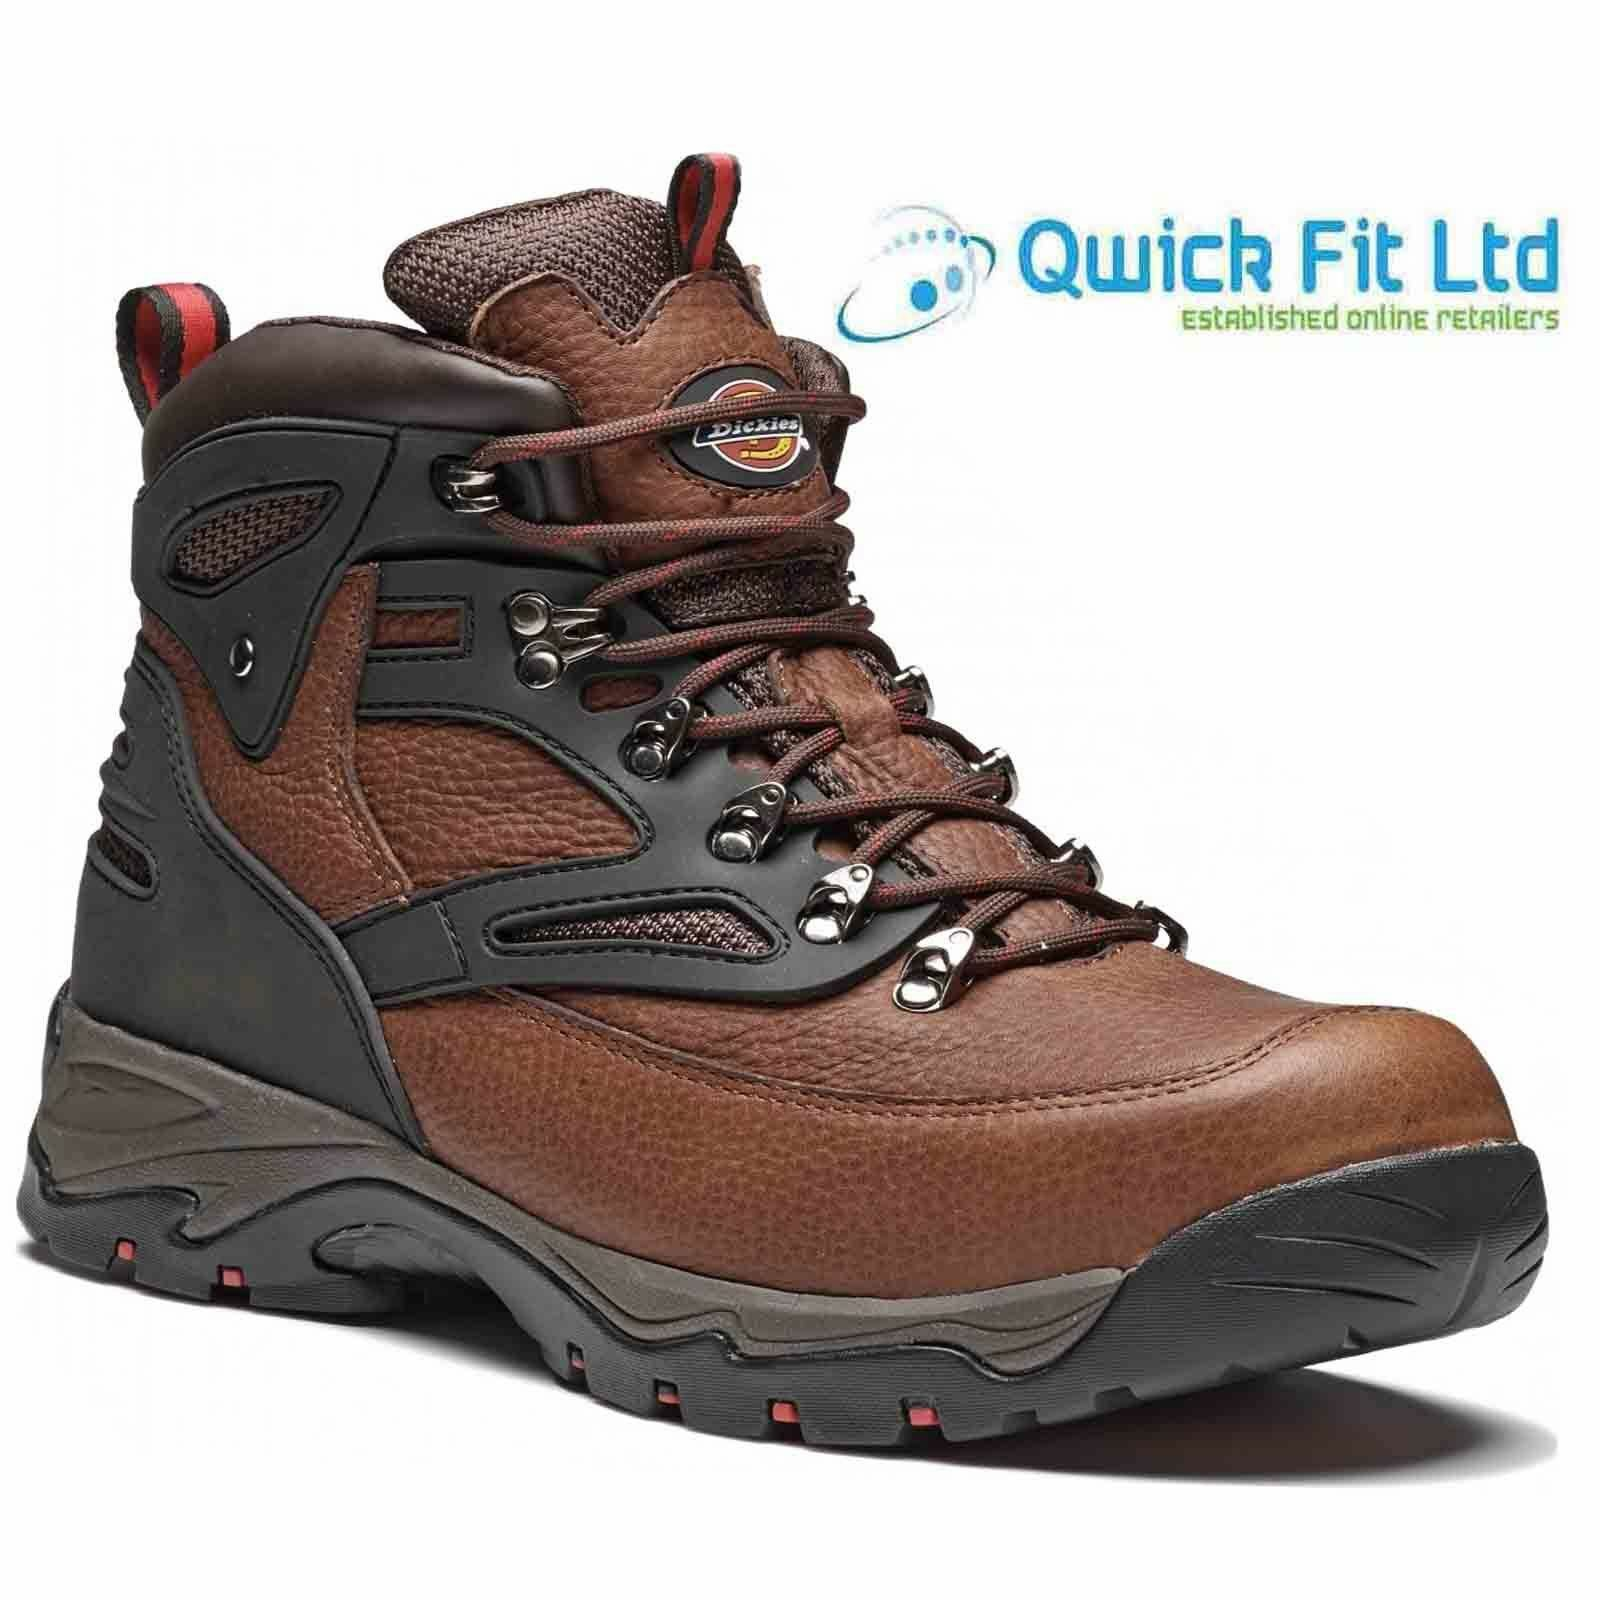 NEW WATERPROOF LEATHER SAFETY STEEL TOE CAP BOOTS WORK HIKING TRAINERS SHOES SZ